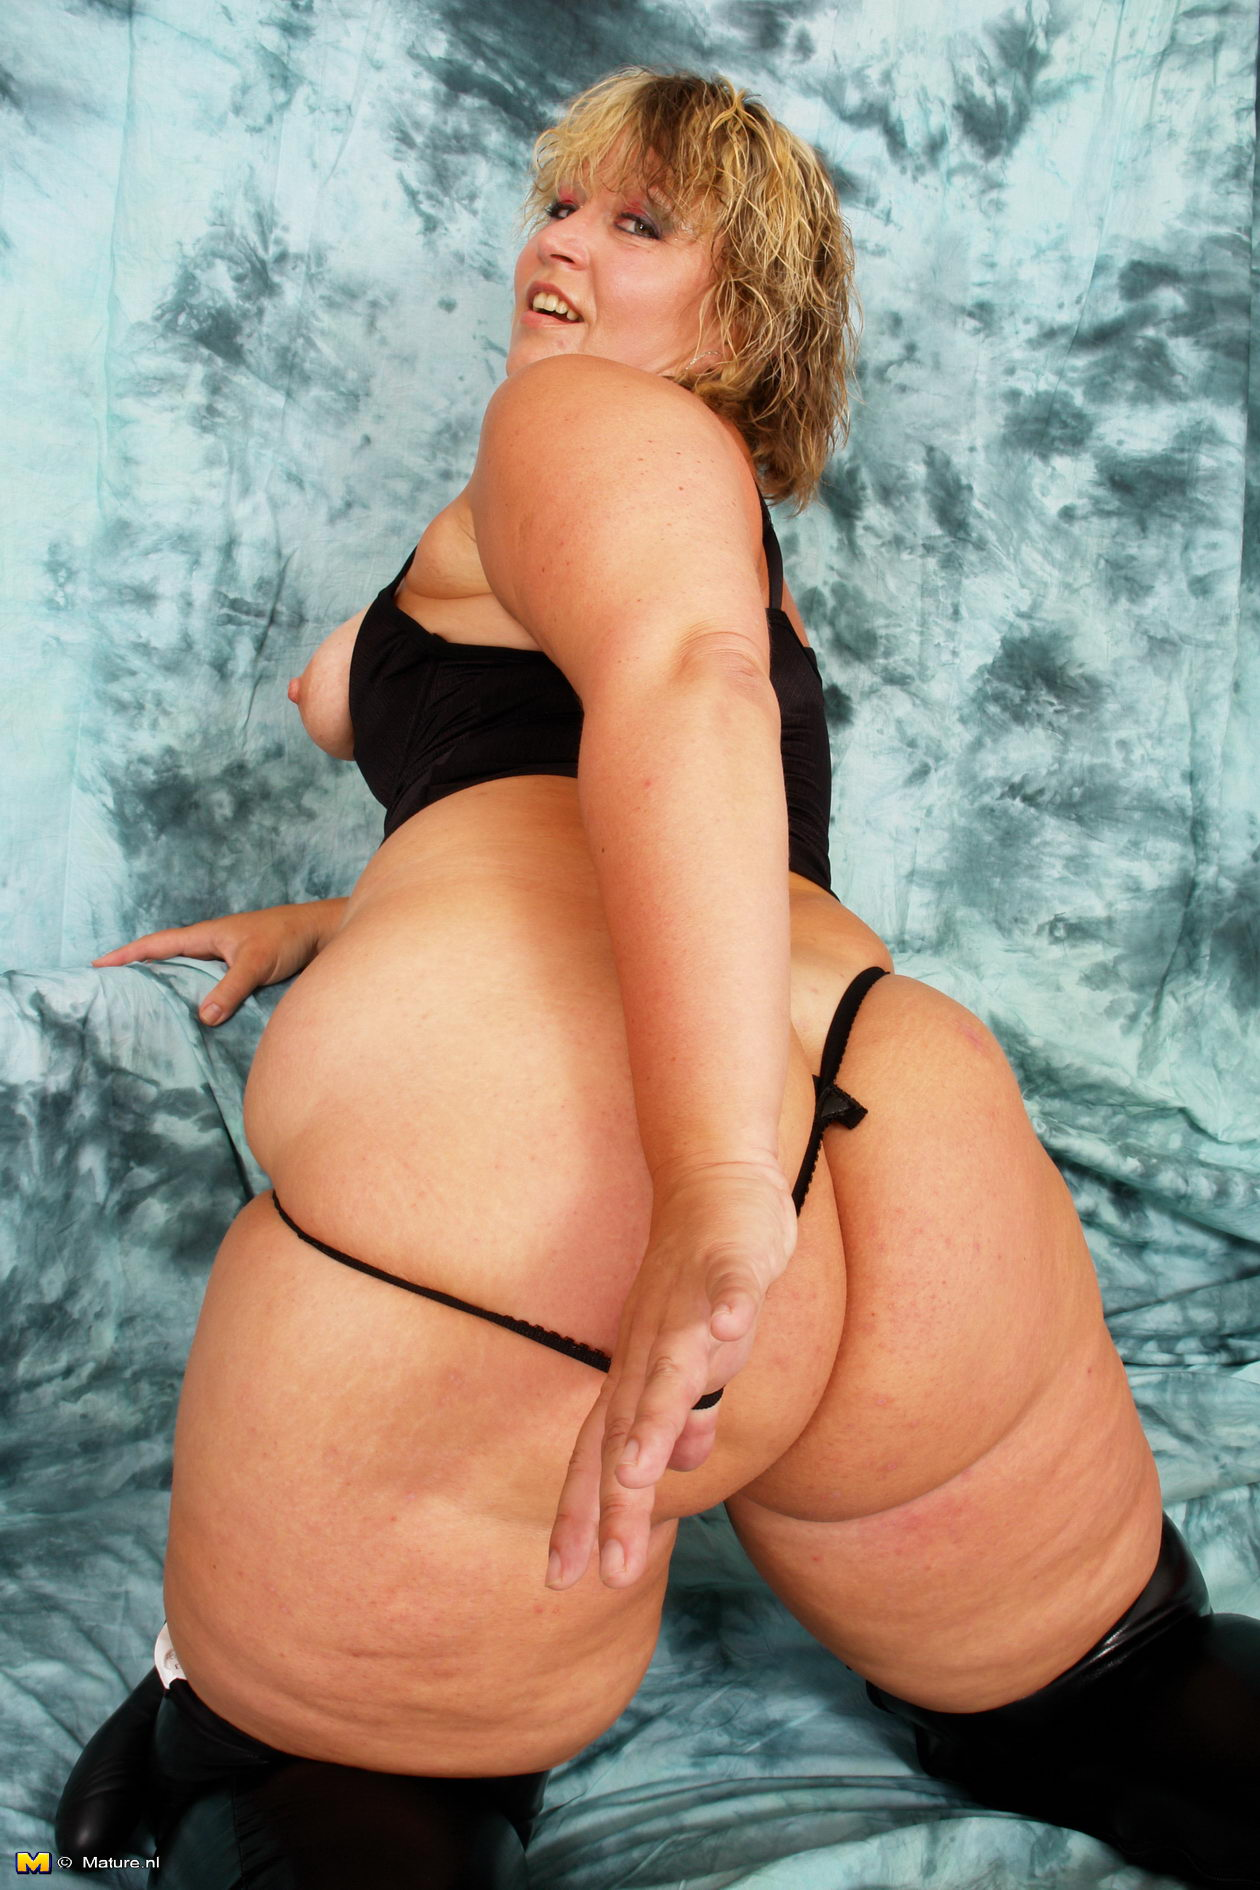 Giant big booty women porn pics are not